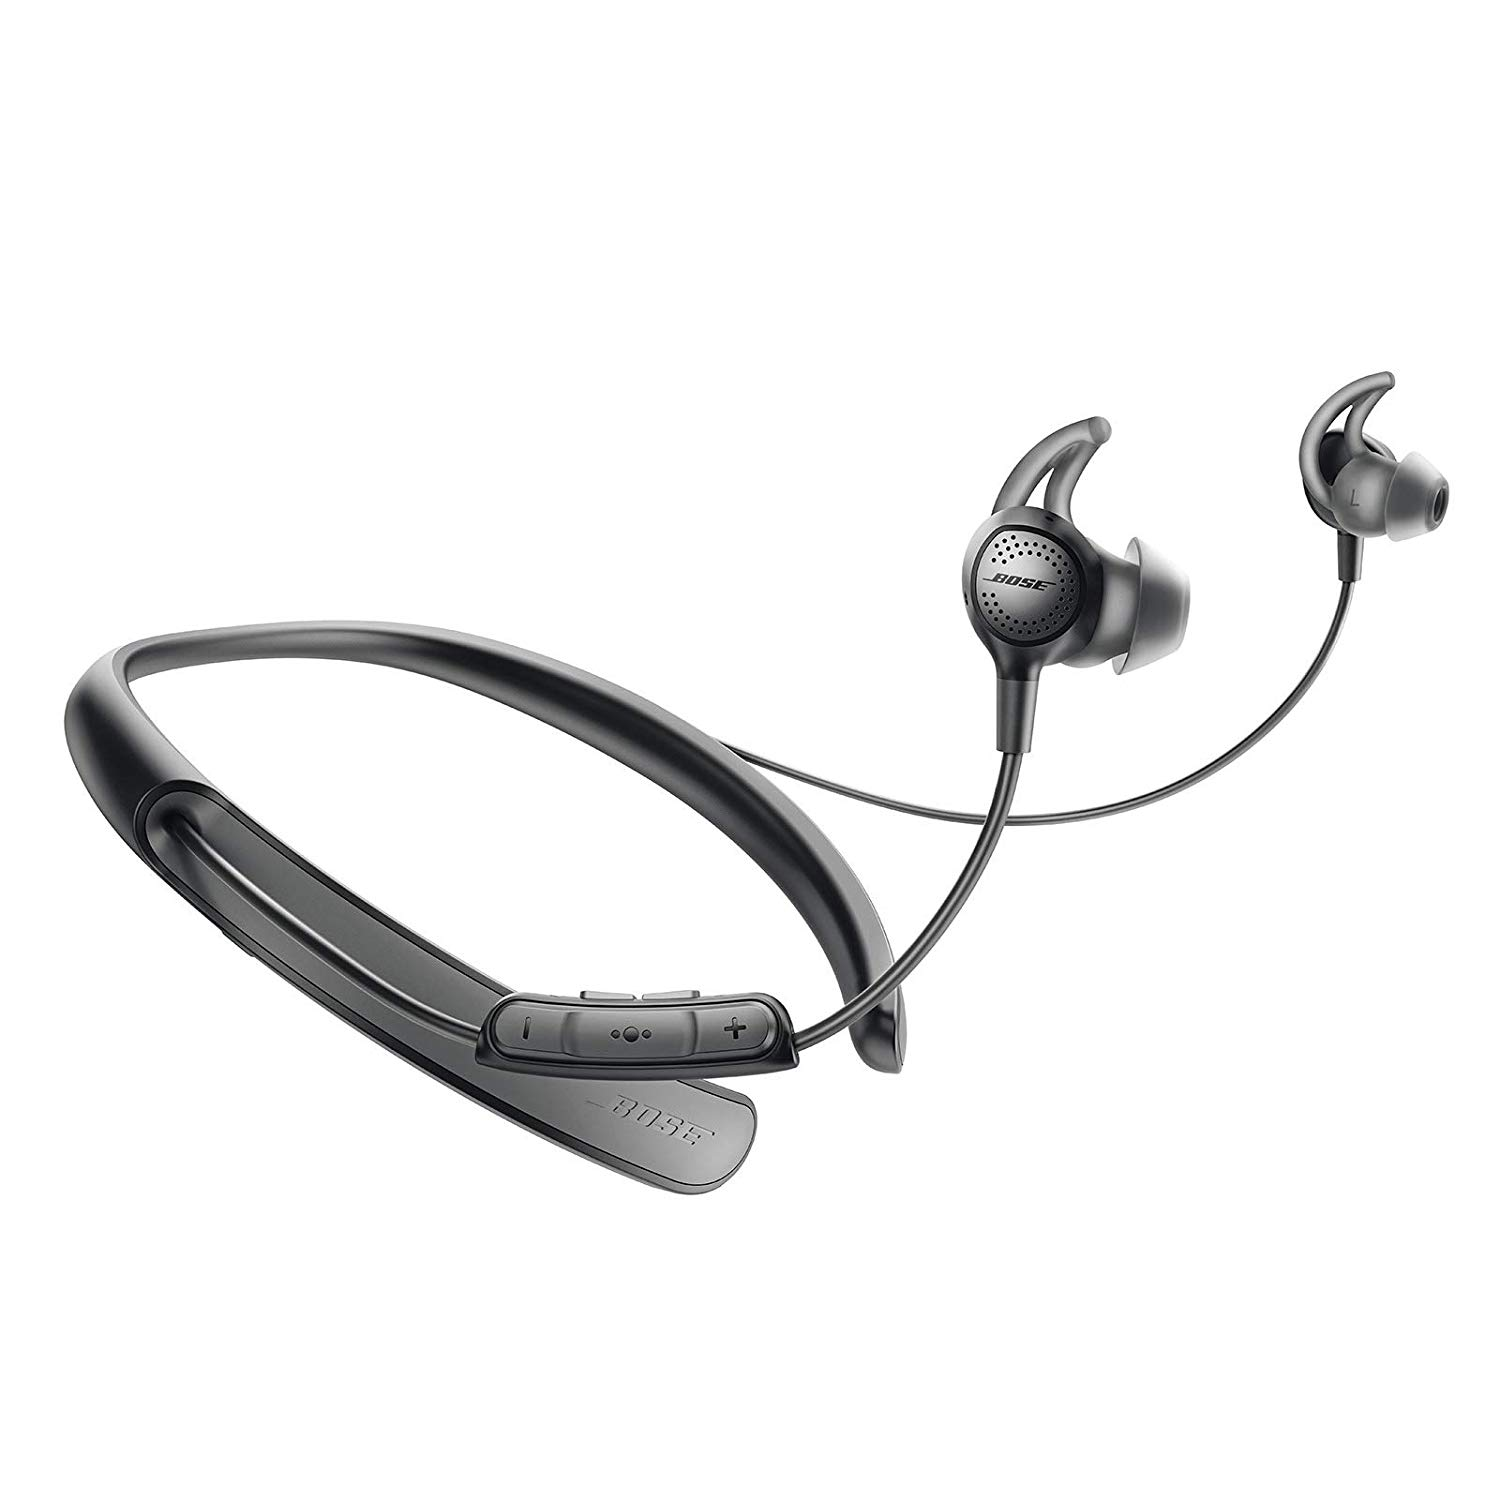 Bose Quietcontrol 30 Wireless Headphones, Noise Cancelling - Black